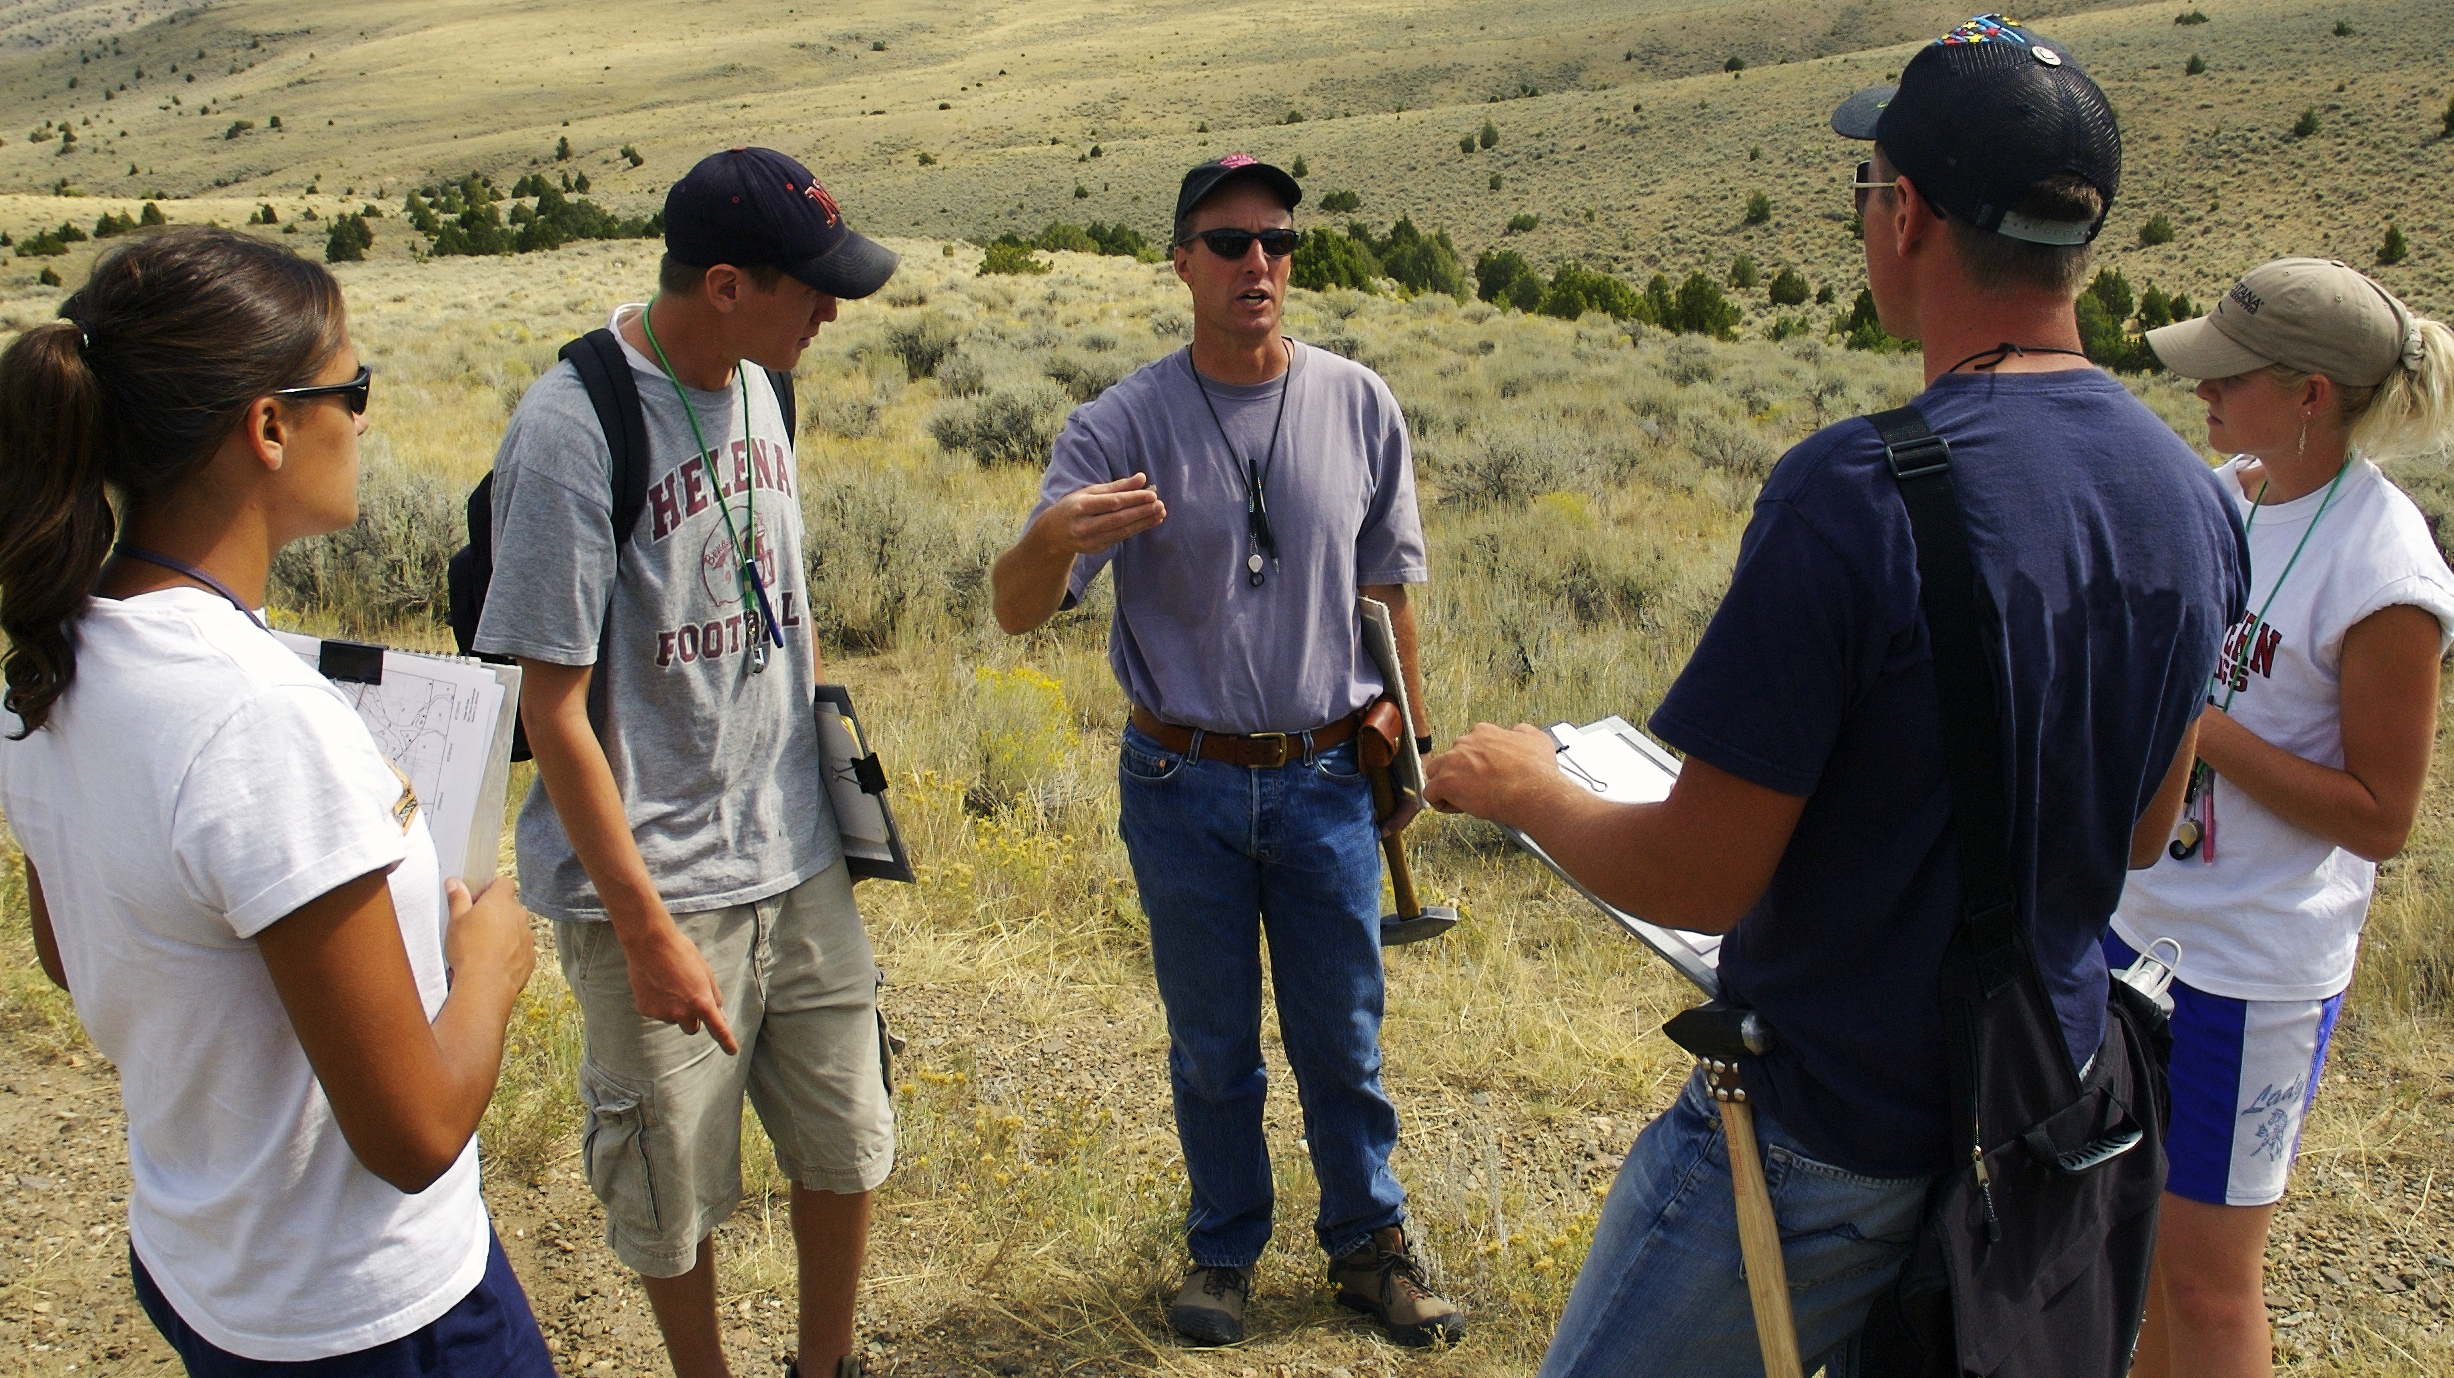 Professor Rob Thomas visiting with students in the field